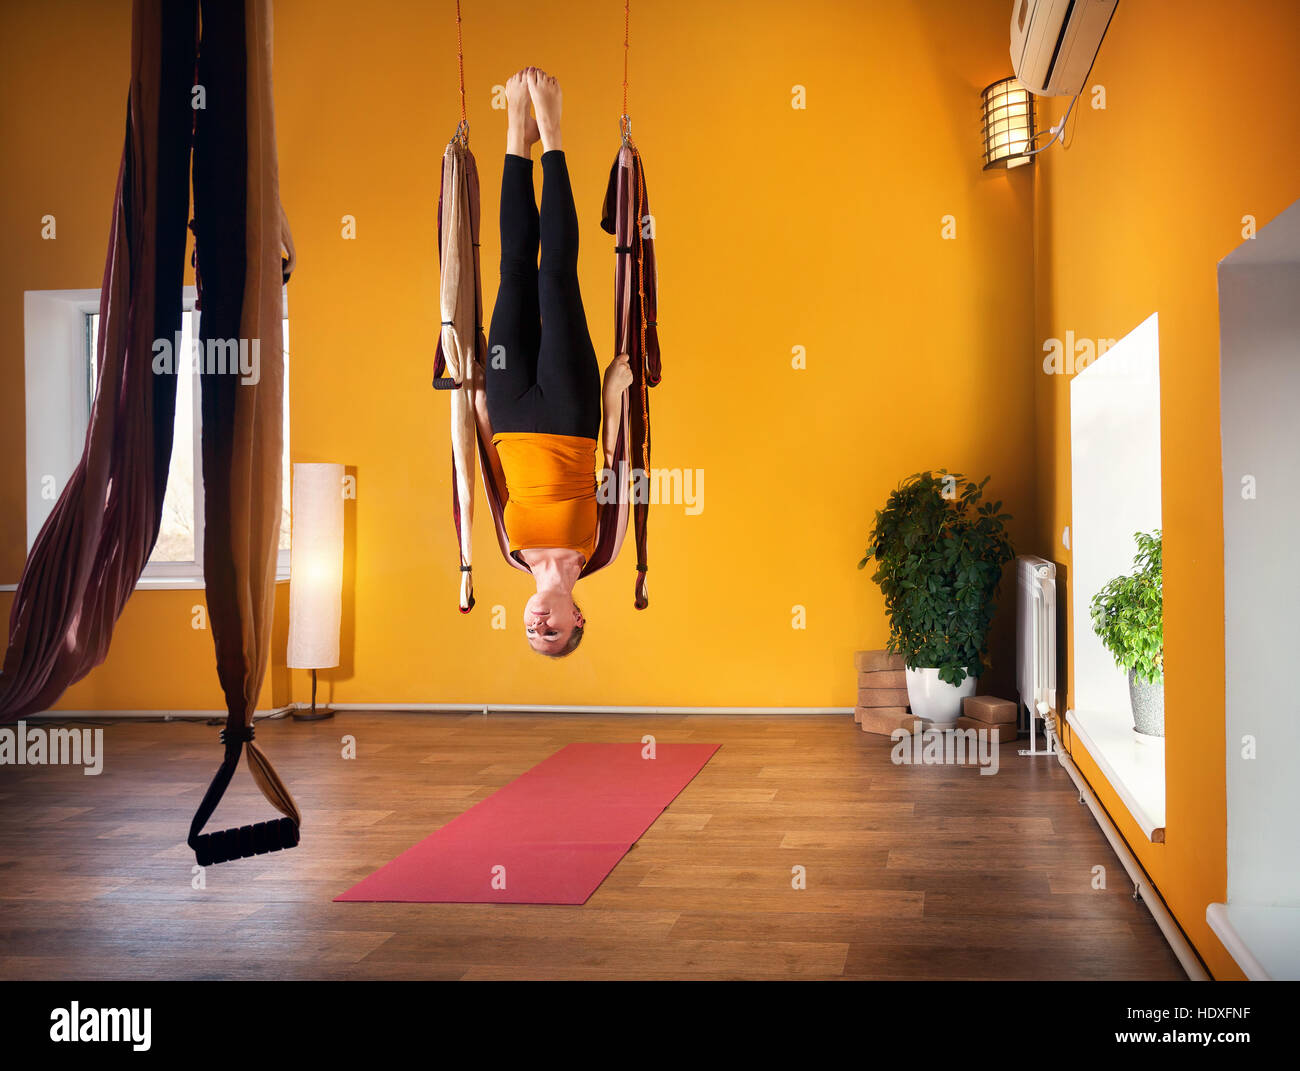 Young woman doing antigravity yoga upside down position in fitness club with yellow walls - Stock Image